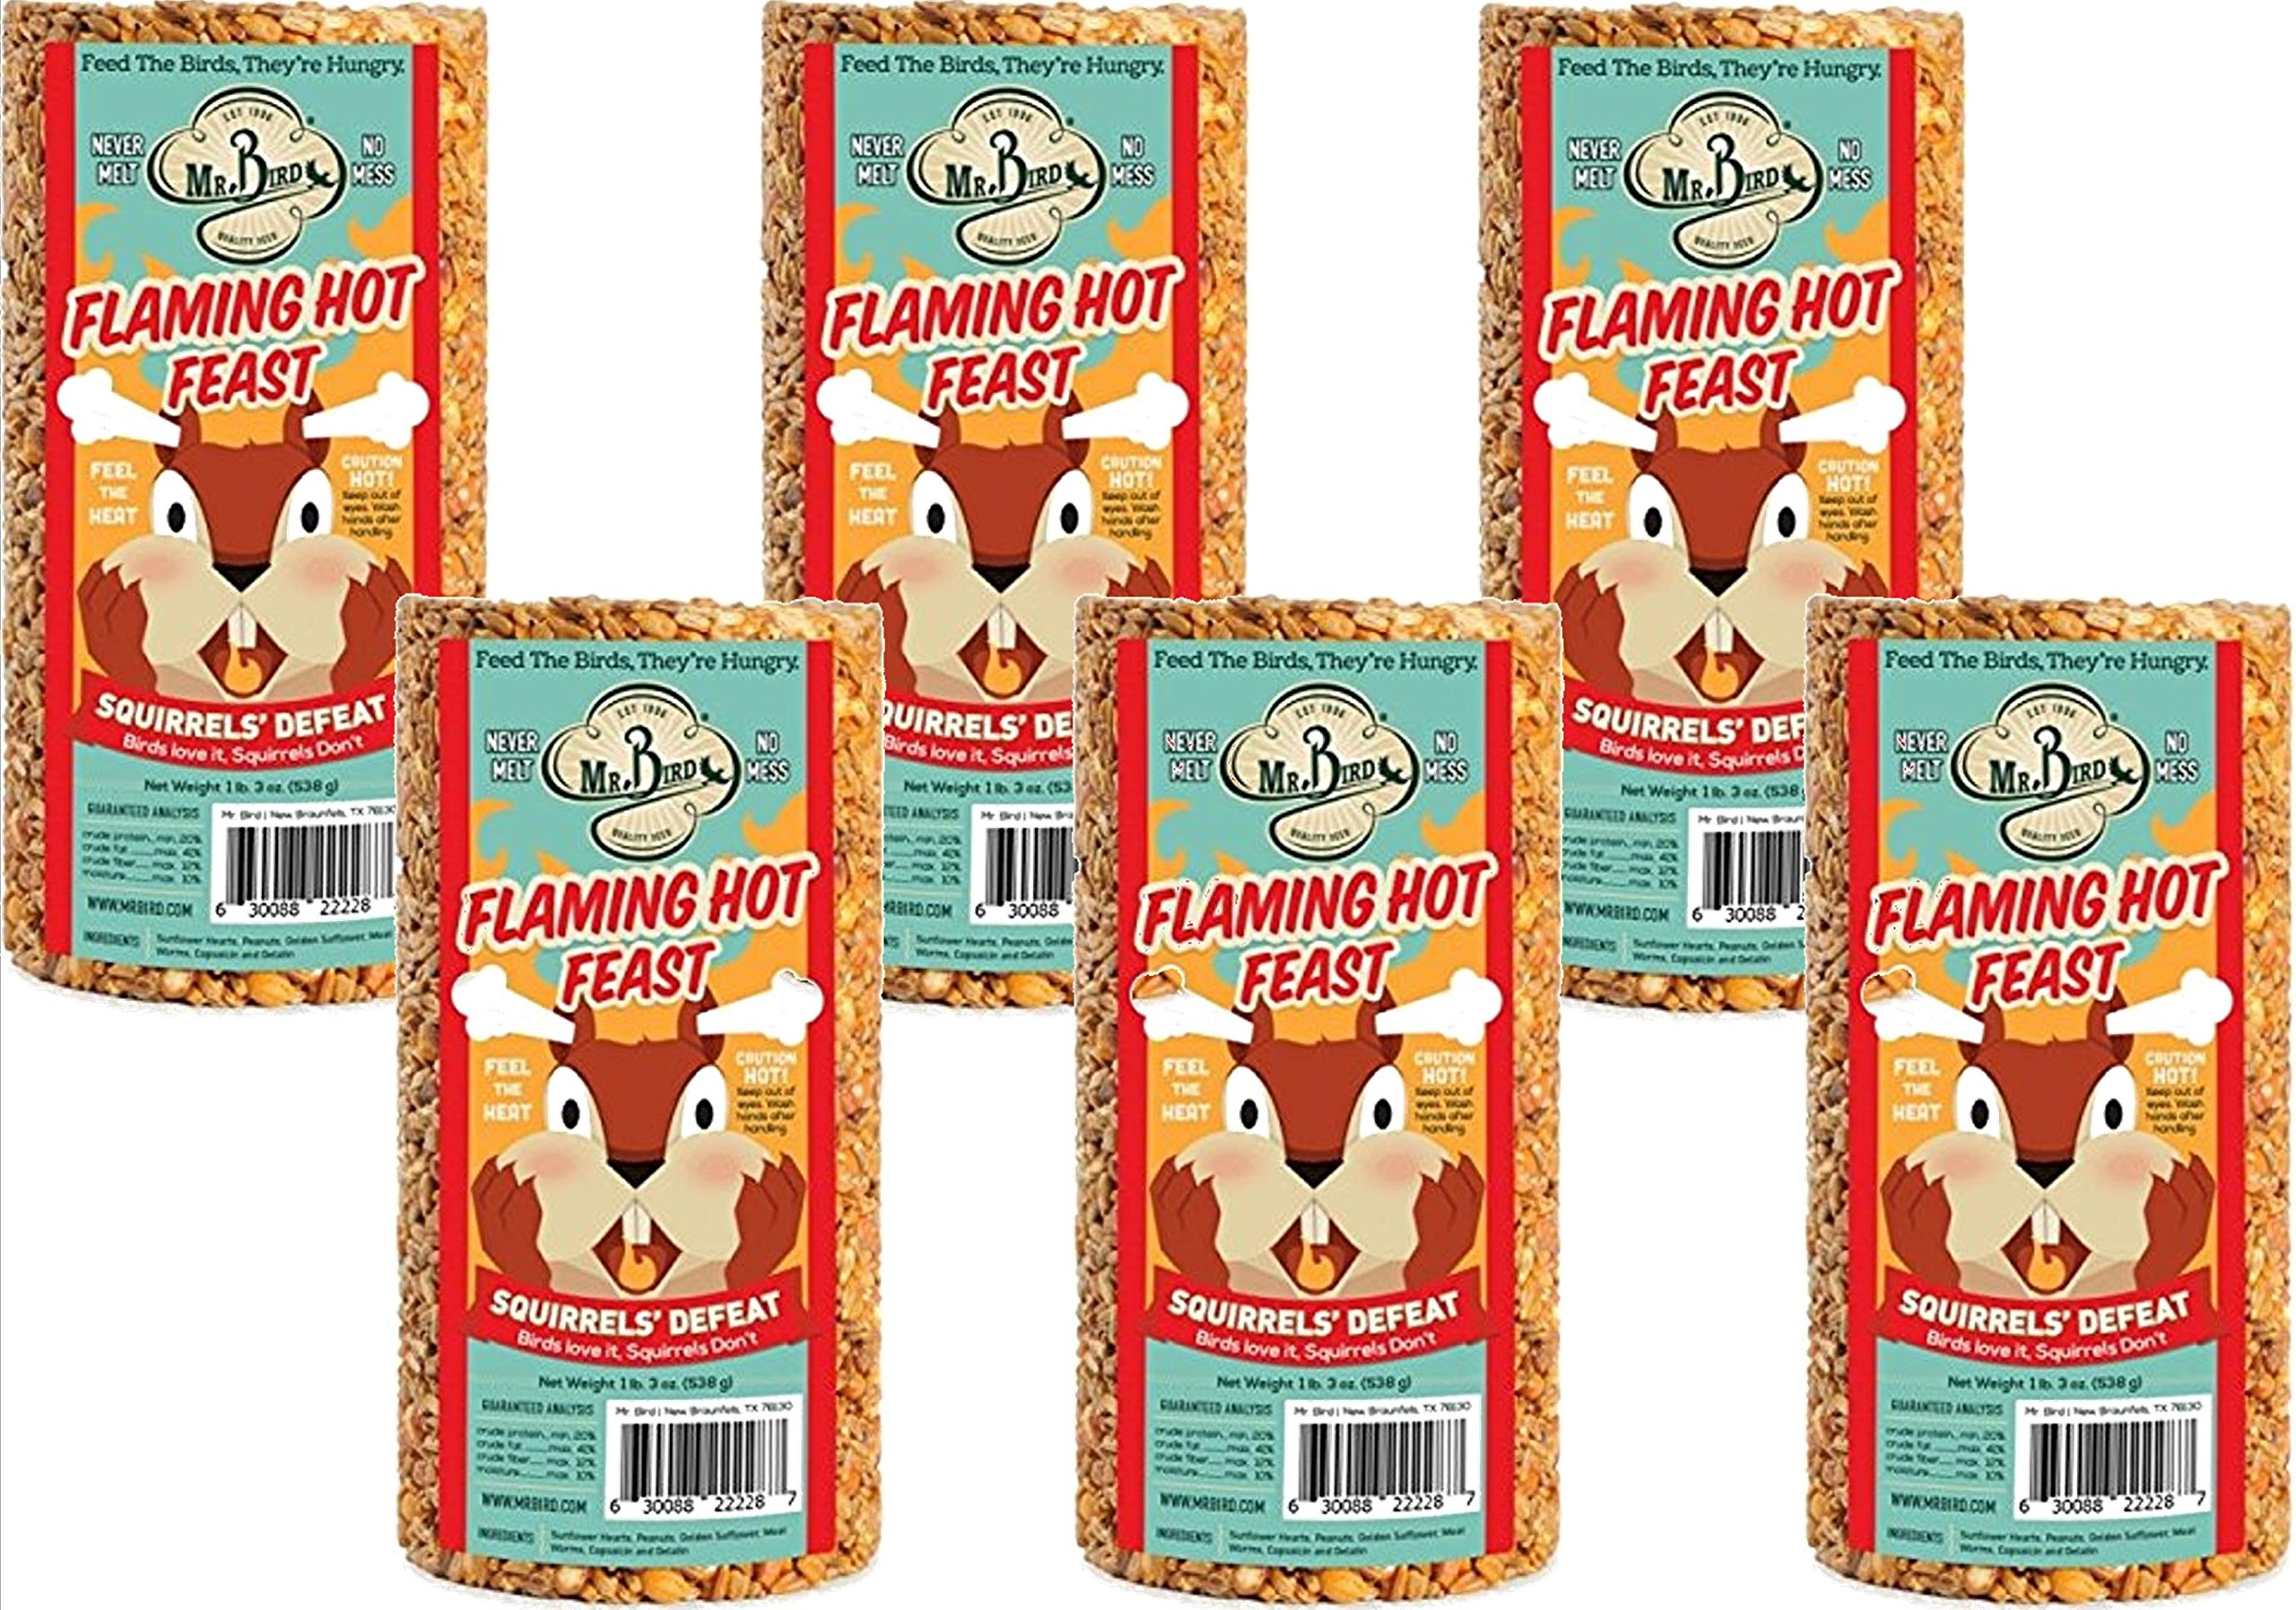 6-Pack of Mr. Bird Flaming Hot Feast Small Cylinder 19 oz. by Mr. Bird